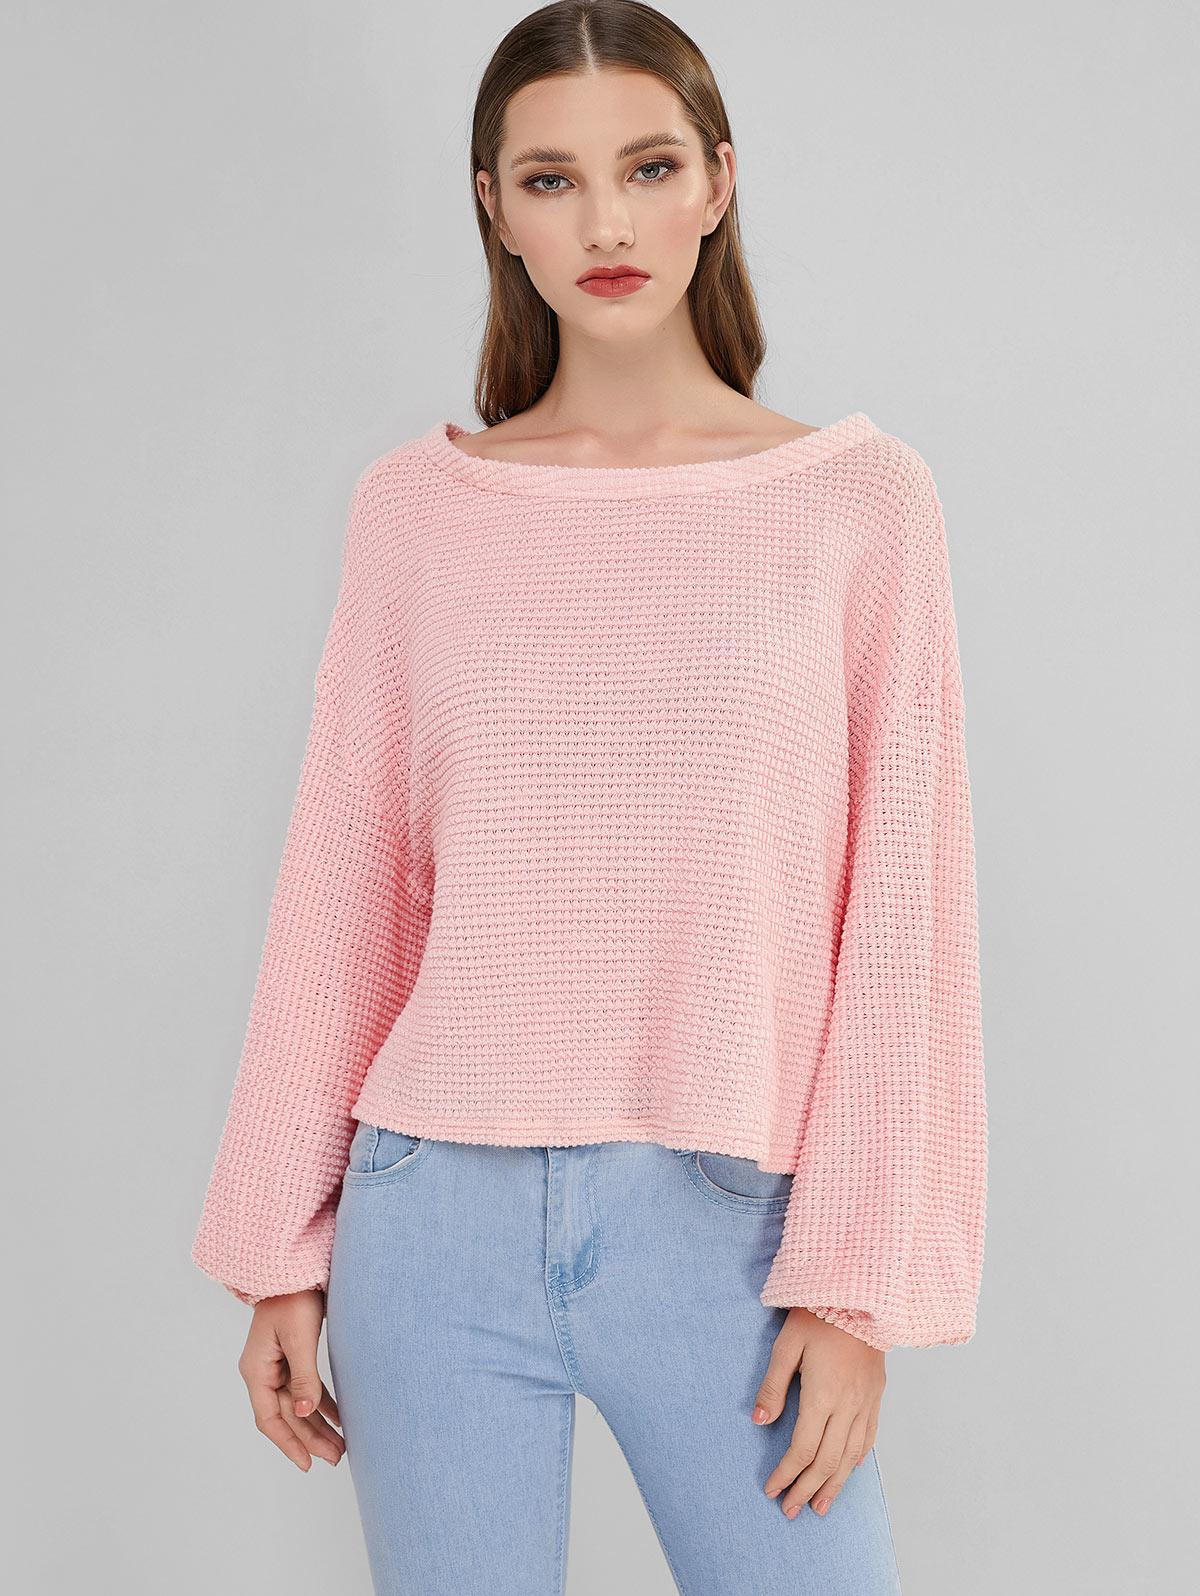 ZAFUL Lantern Sleeve Boat Neck Sweater